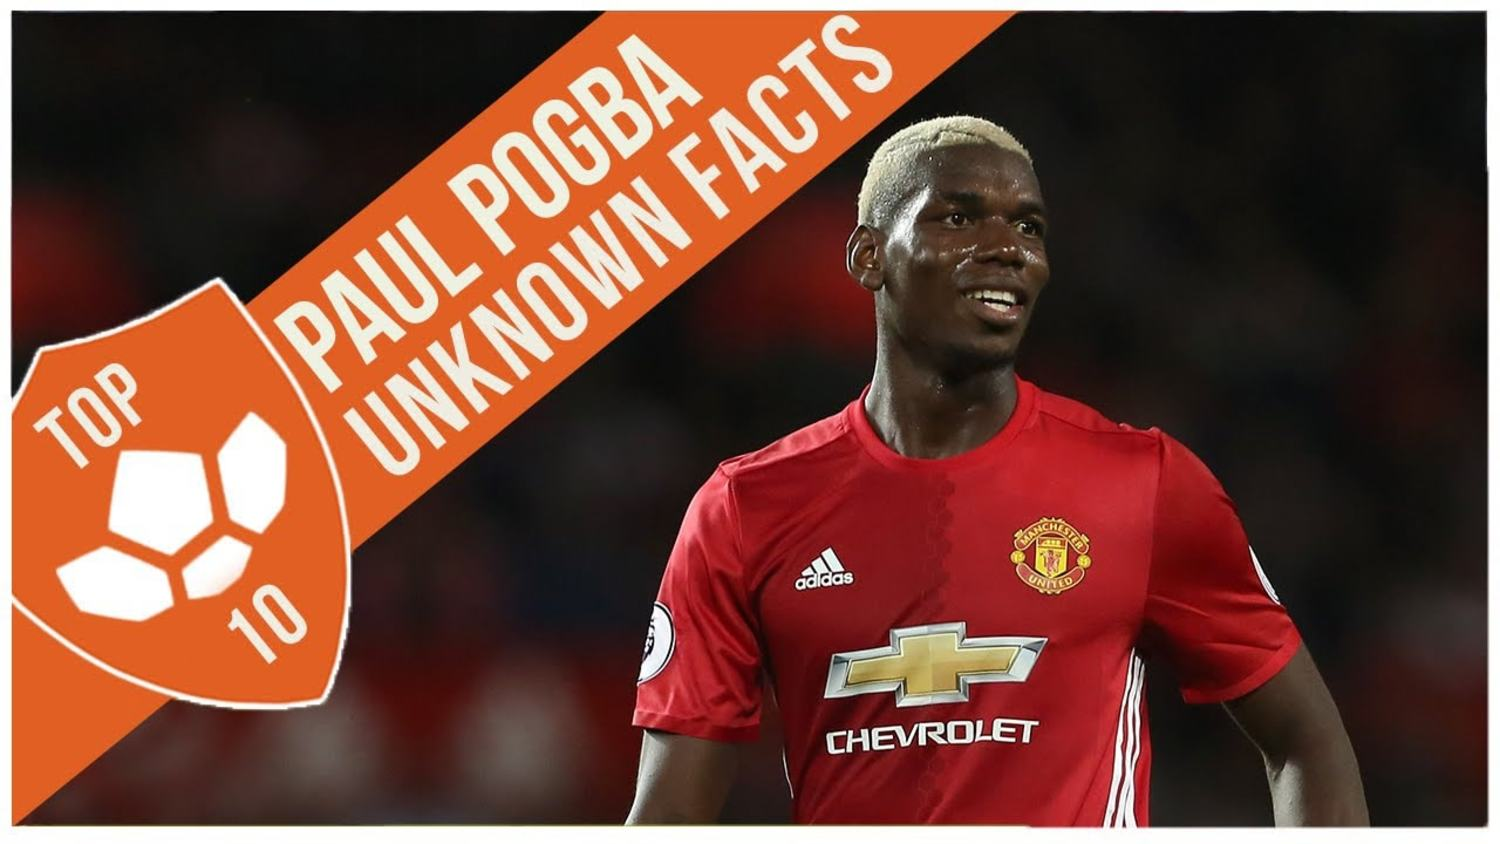 Paul Pogba: Top 10 Unknown Facts